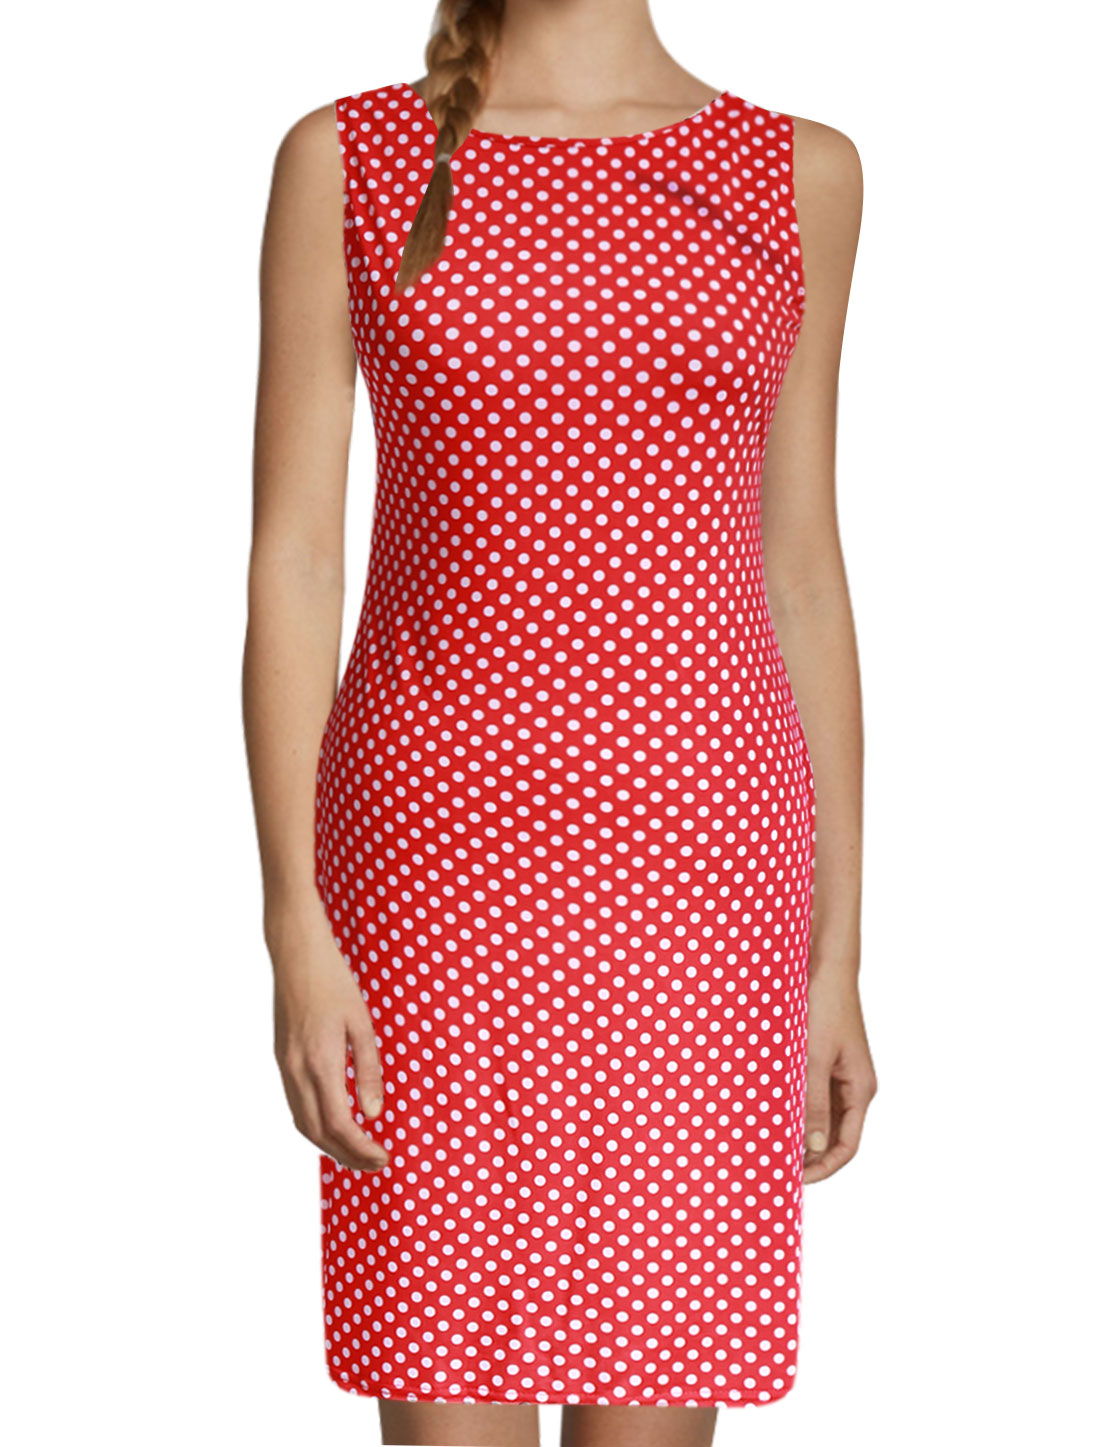 Lady Backless Dots Printed Sleeveless Pencil Dress Red L